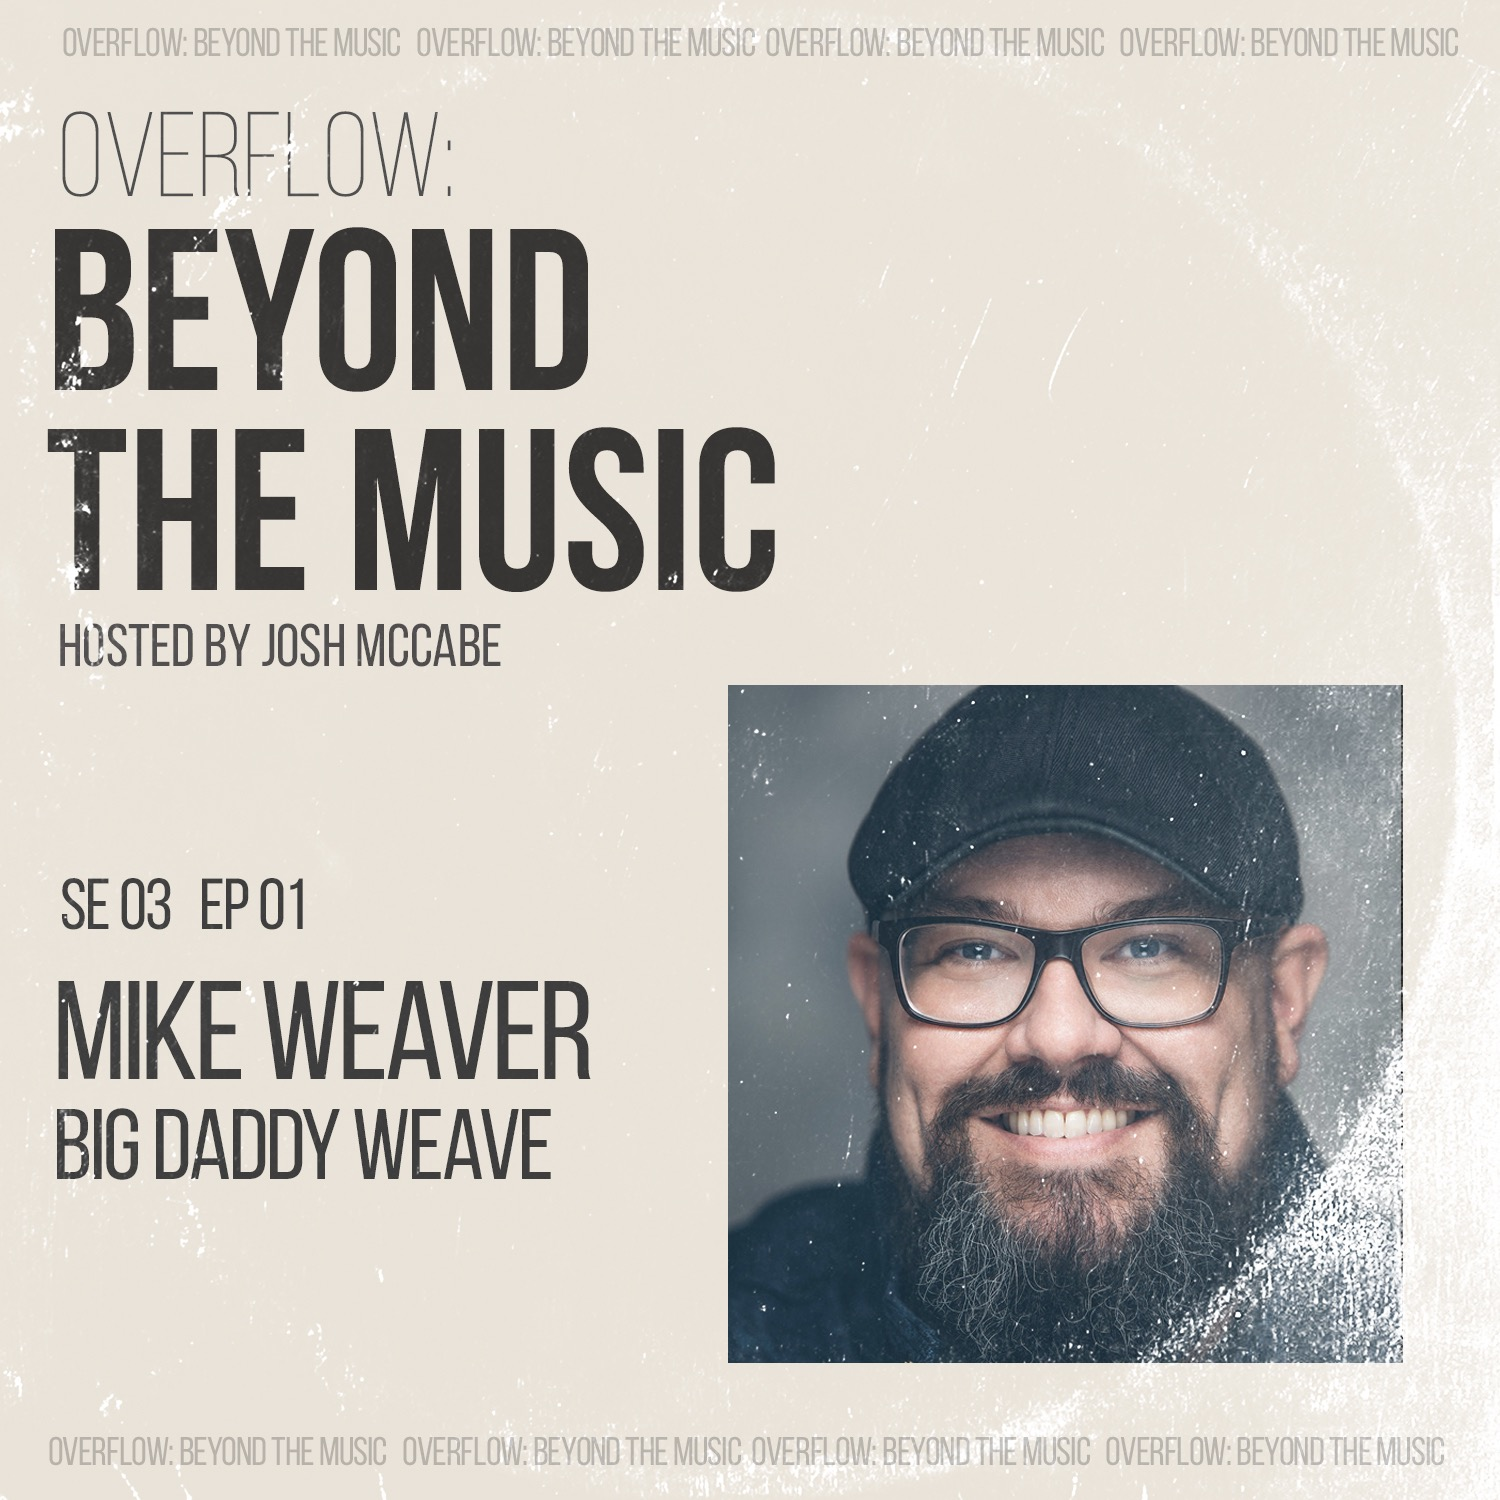 Mike Weaver of Big Daddy Weave